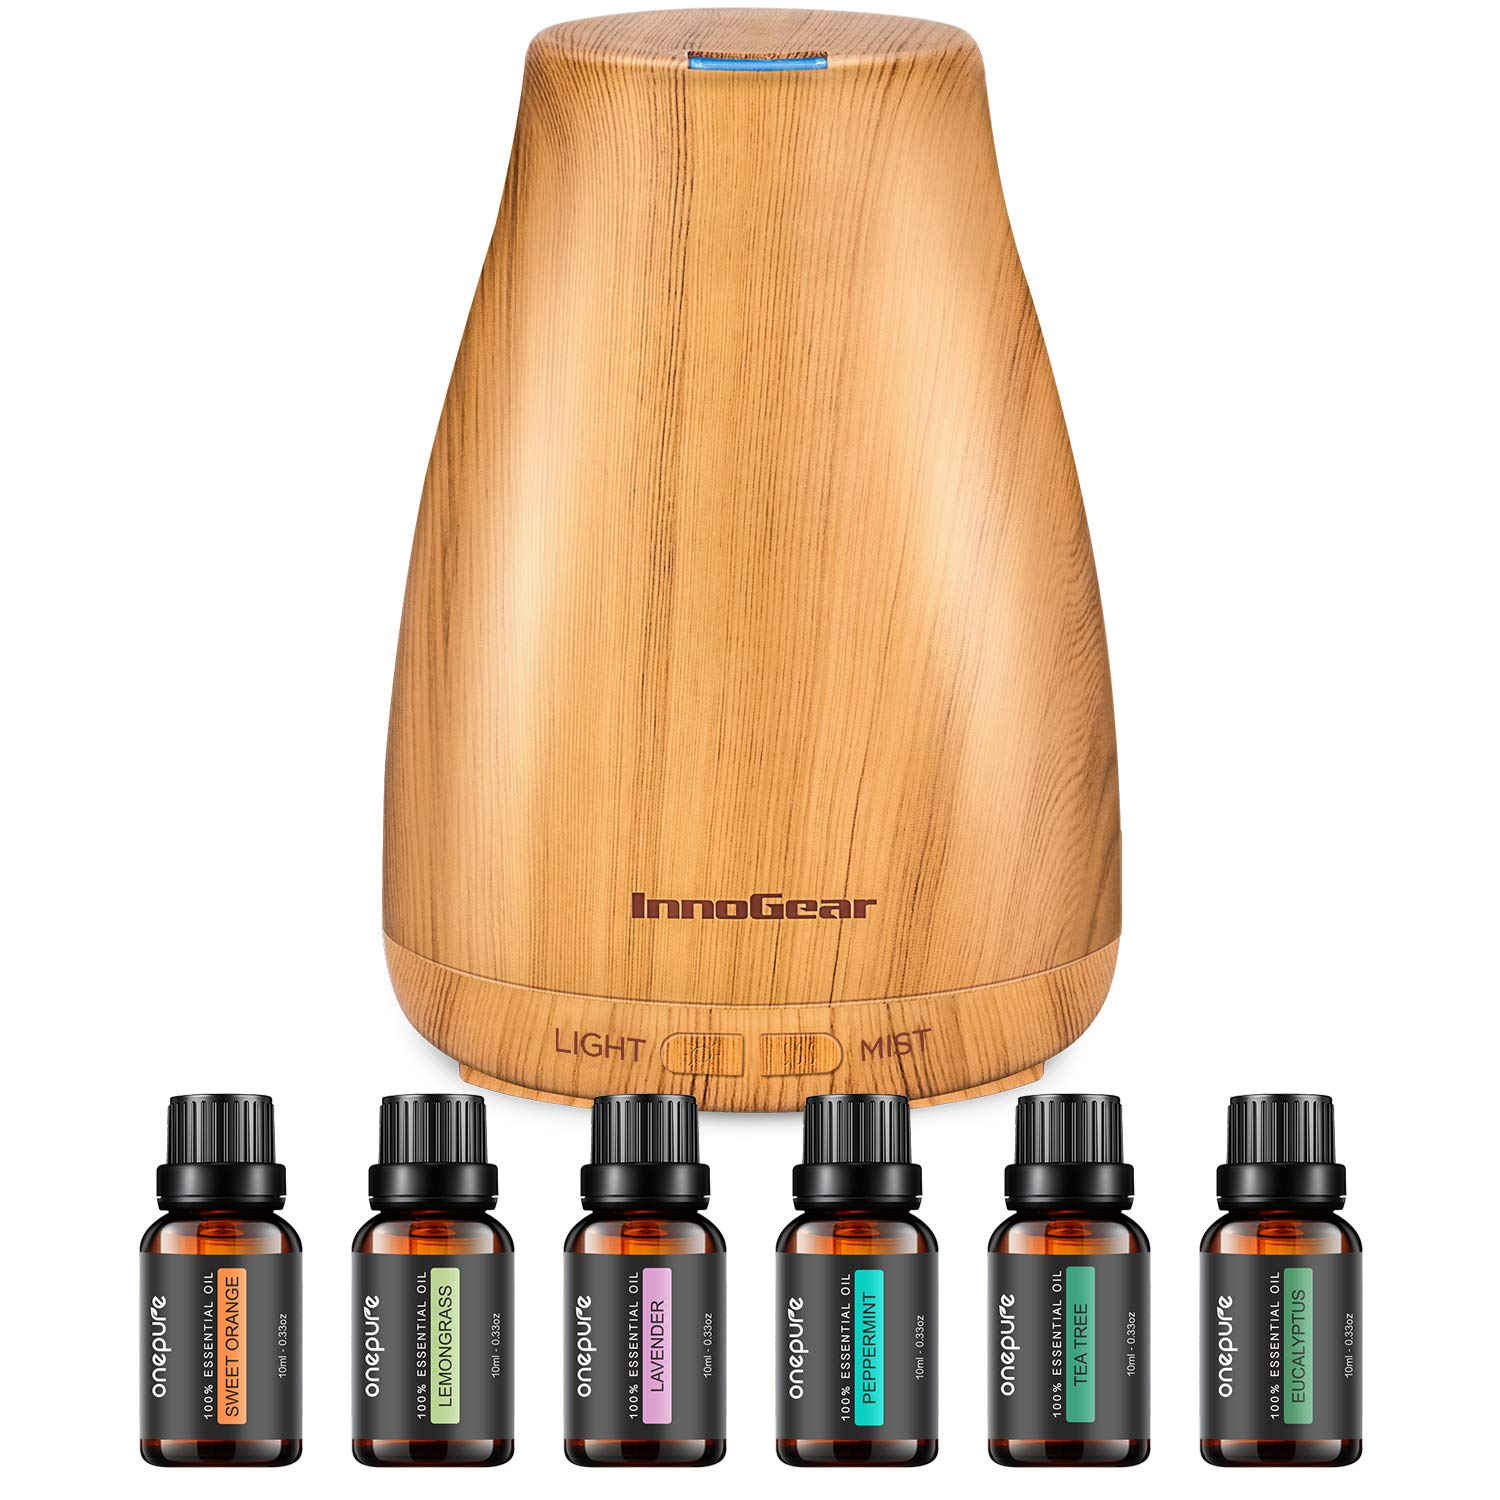 Aromatherapy Diffuser with 6 Essential Oils Set, Aroma Cool Mist Humidifier Gift Set